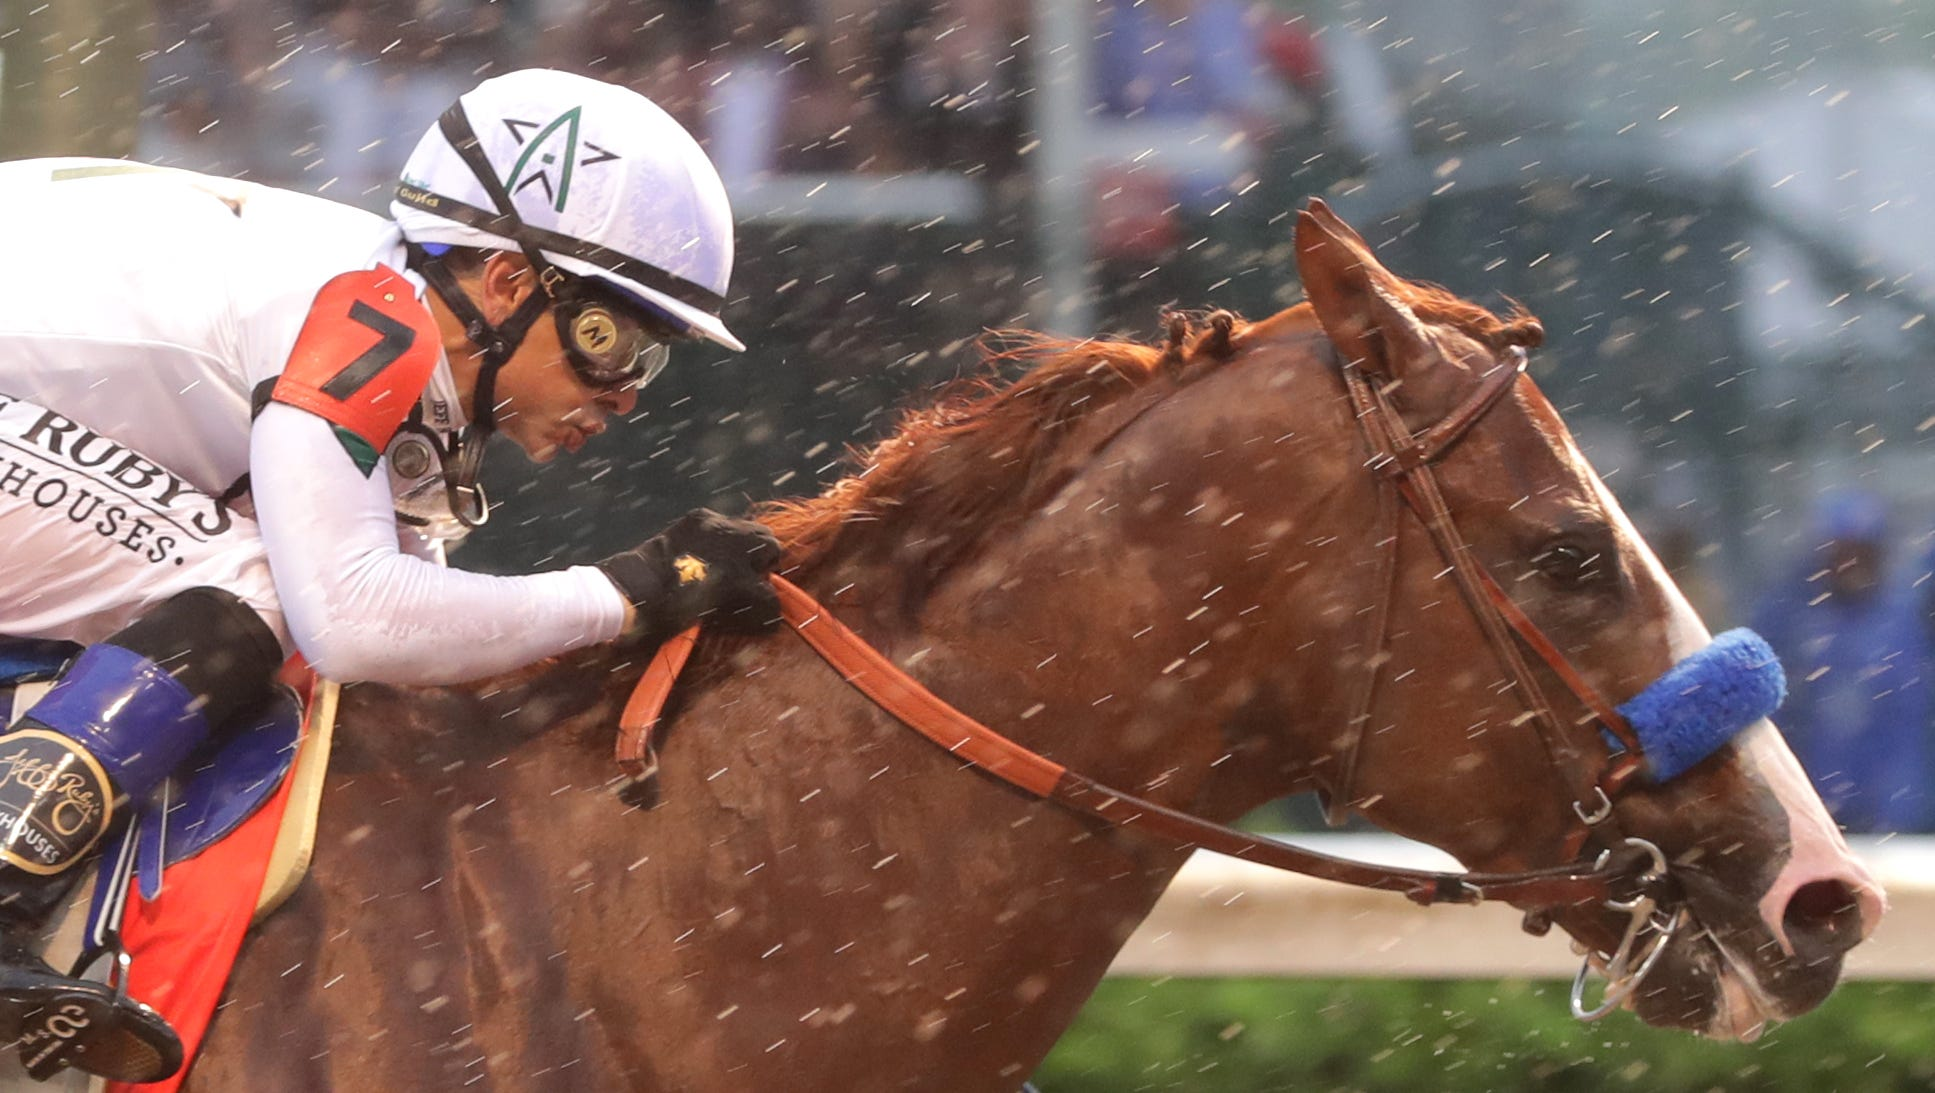 Kentucky Derby 255 Woman wins $255.25M on $2558 bet on Justify